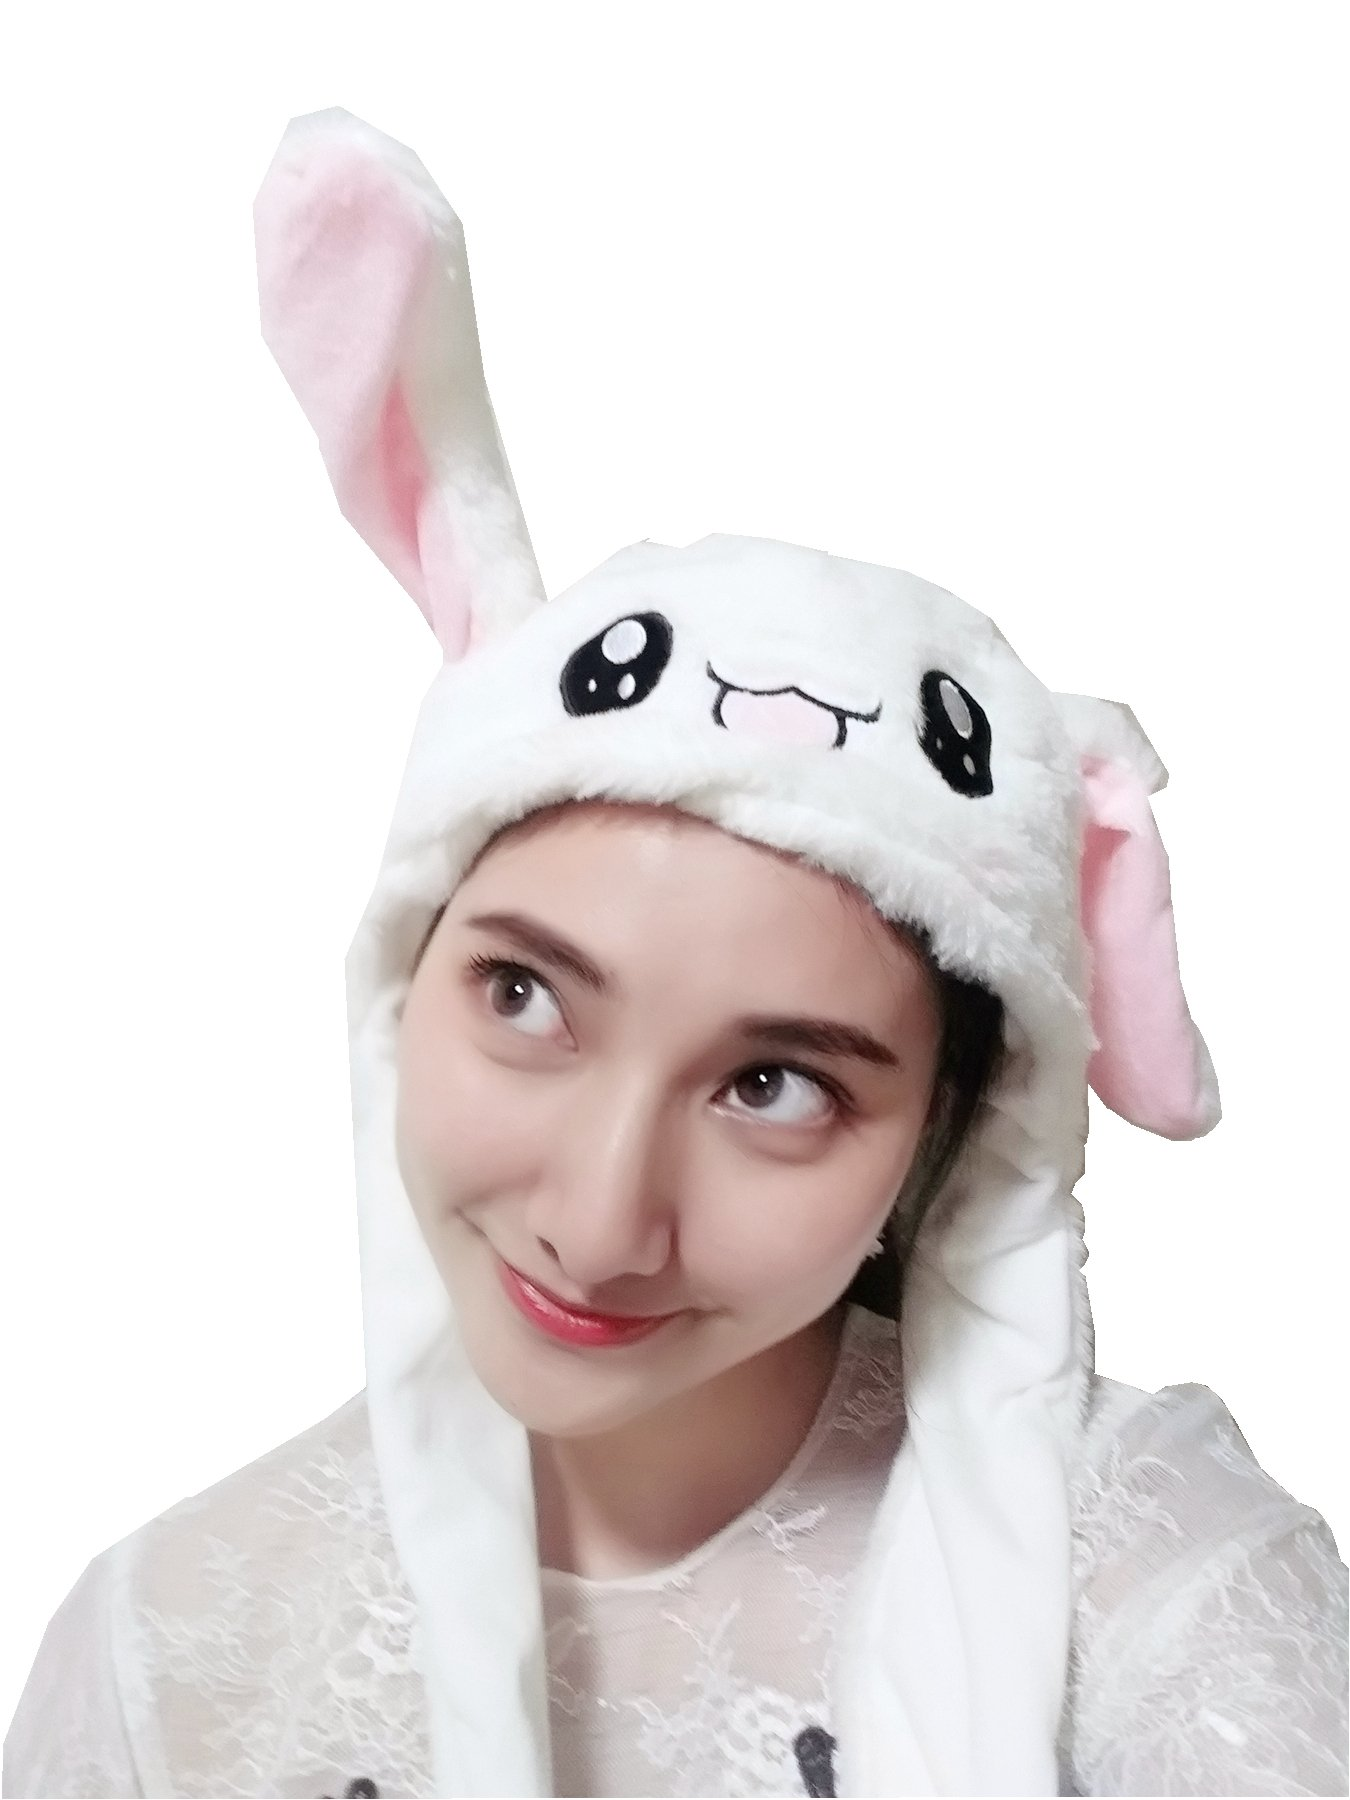 Funny Rabbit Ear Hat When You Pressing The Paws Bunny Ears Can Shake Cute White Animal Hat Bunny Ears Toys in Cosplay Party Gifts for Easter Halloween Christmas Birthday Bunny Plushy Scarf